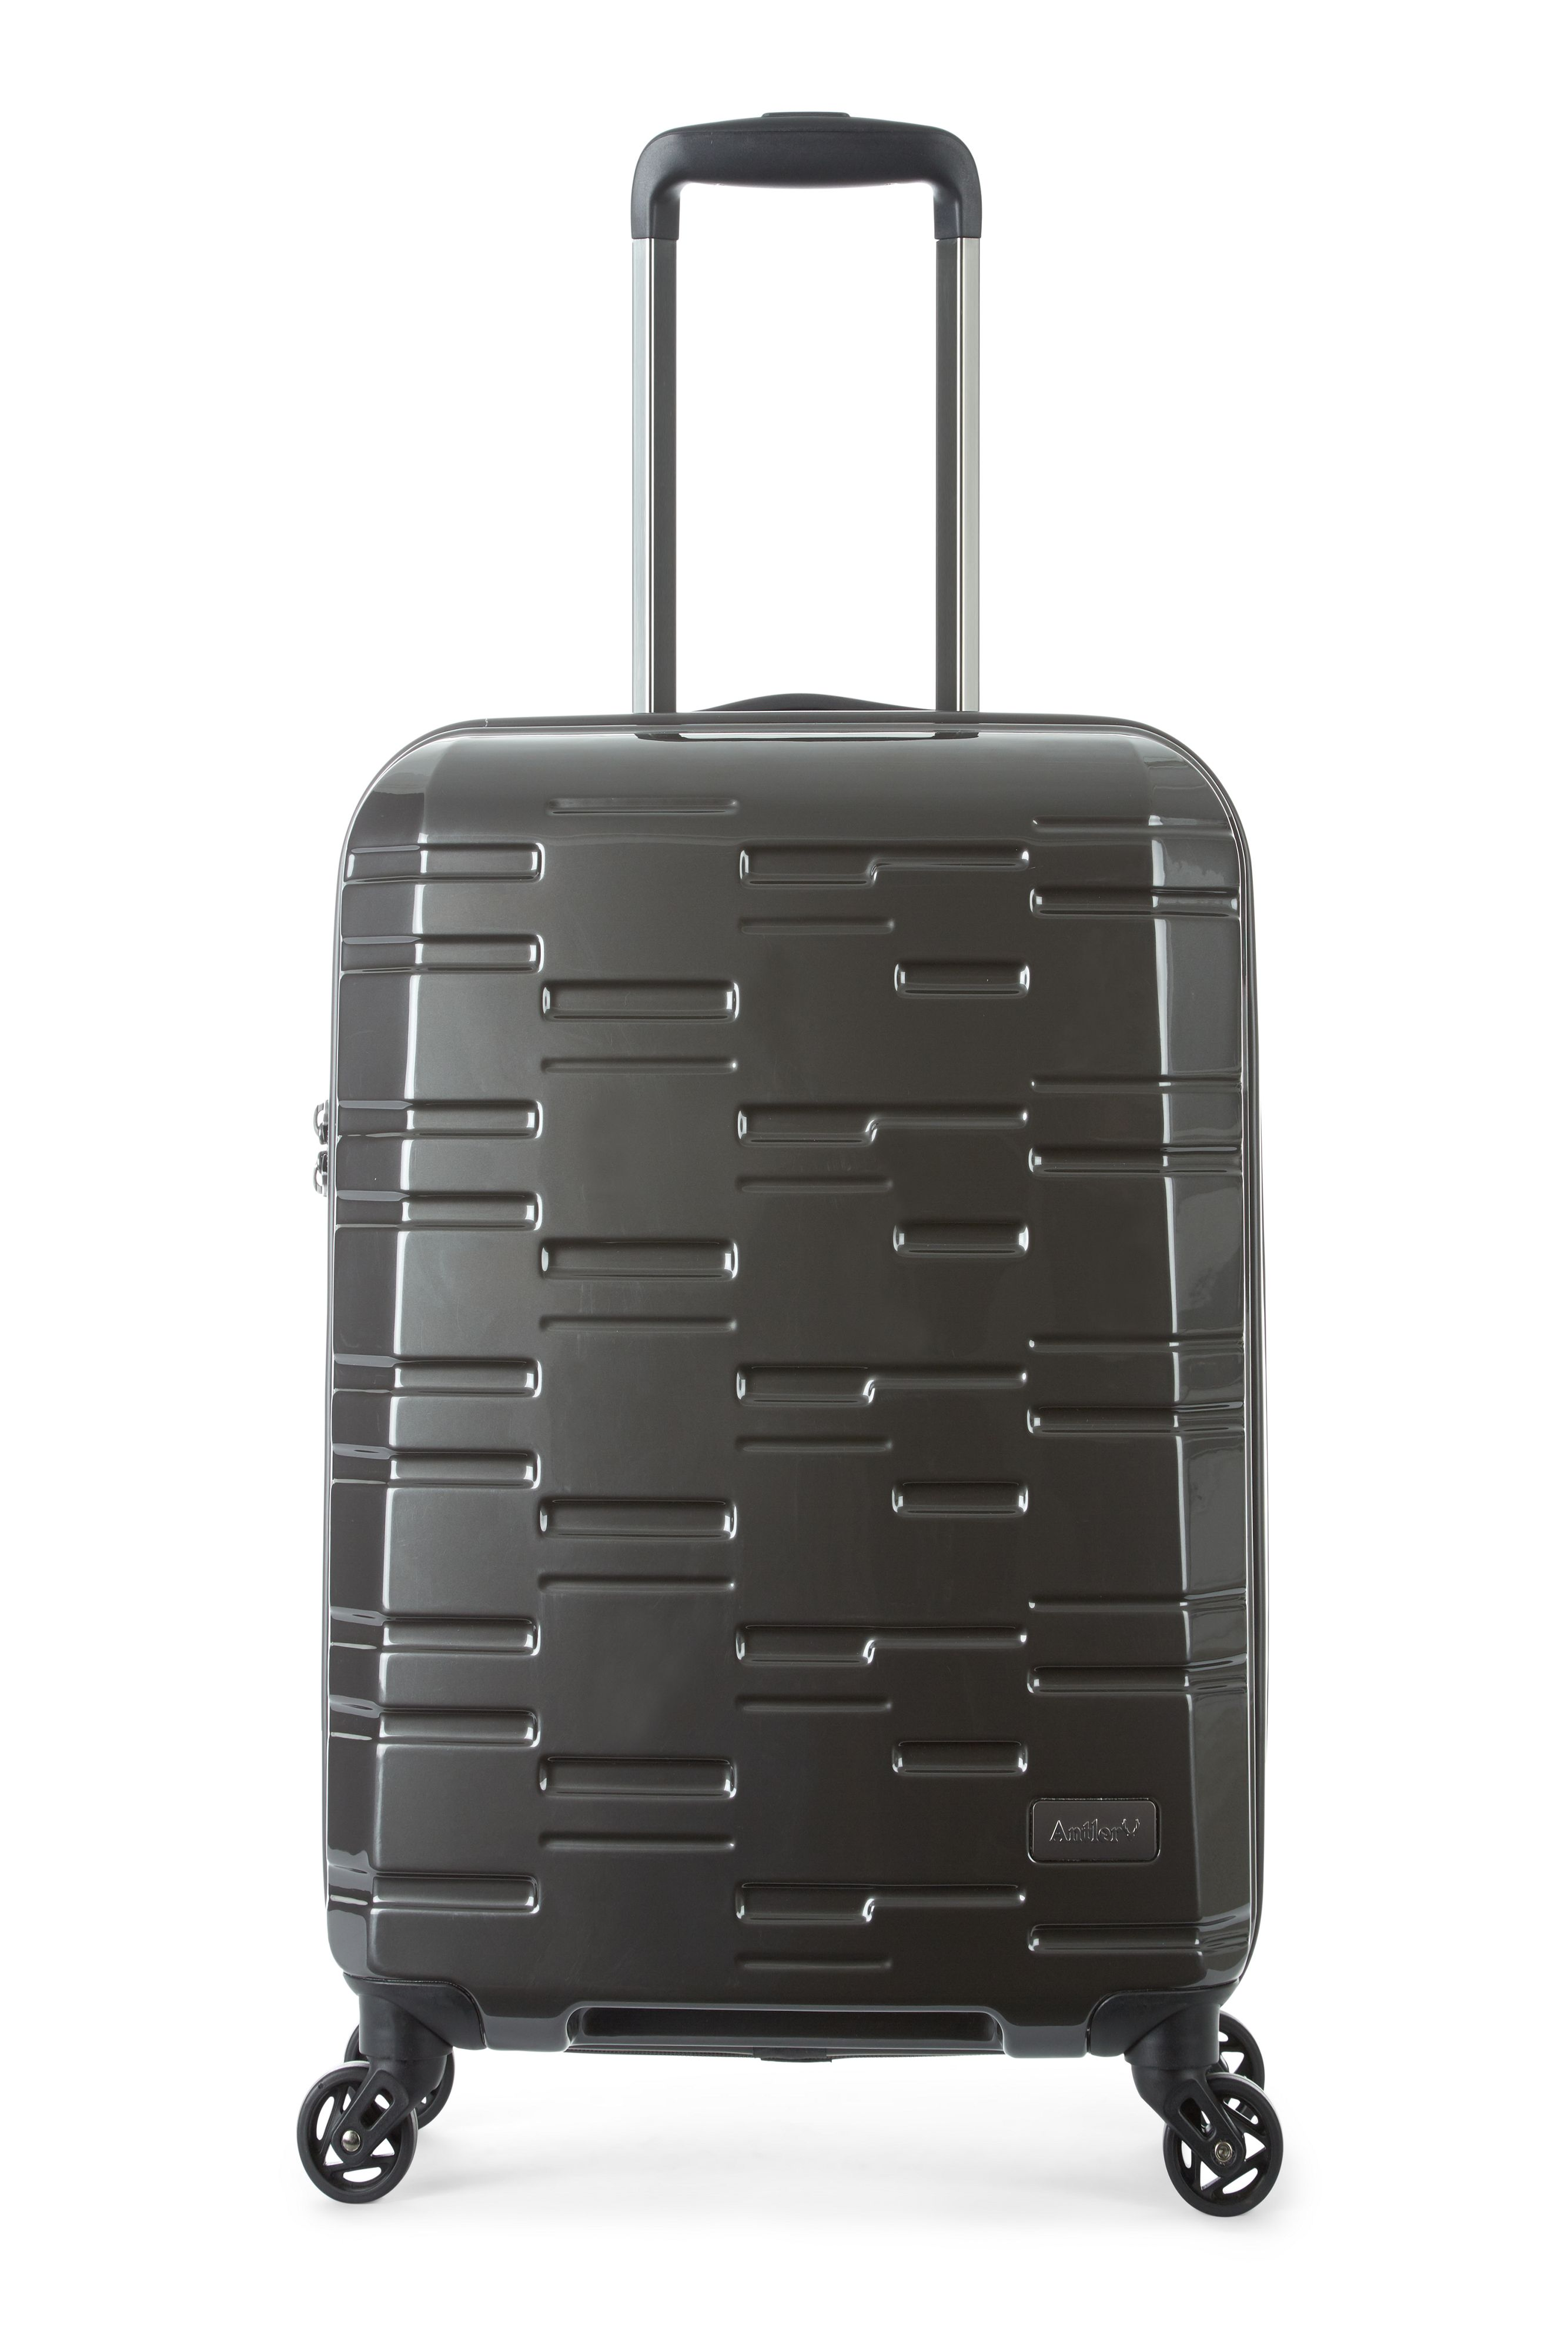 Antler Prism charcoal 4 wheel hard cabin suitcase Charcoal